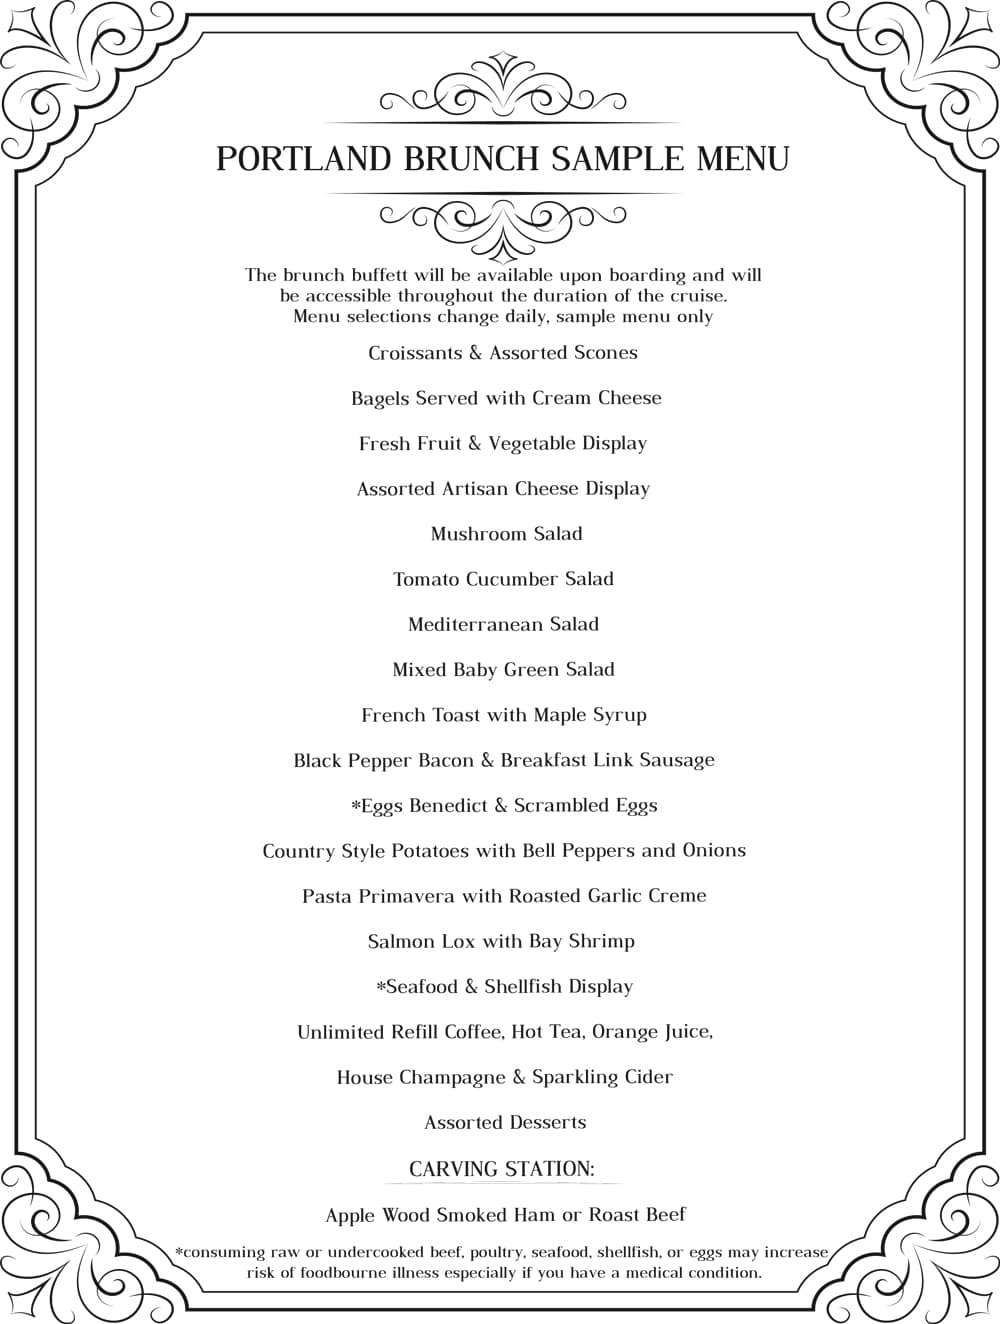 Porltand Brunch sample menu